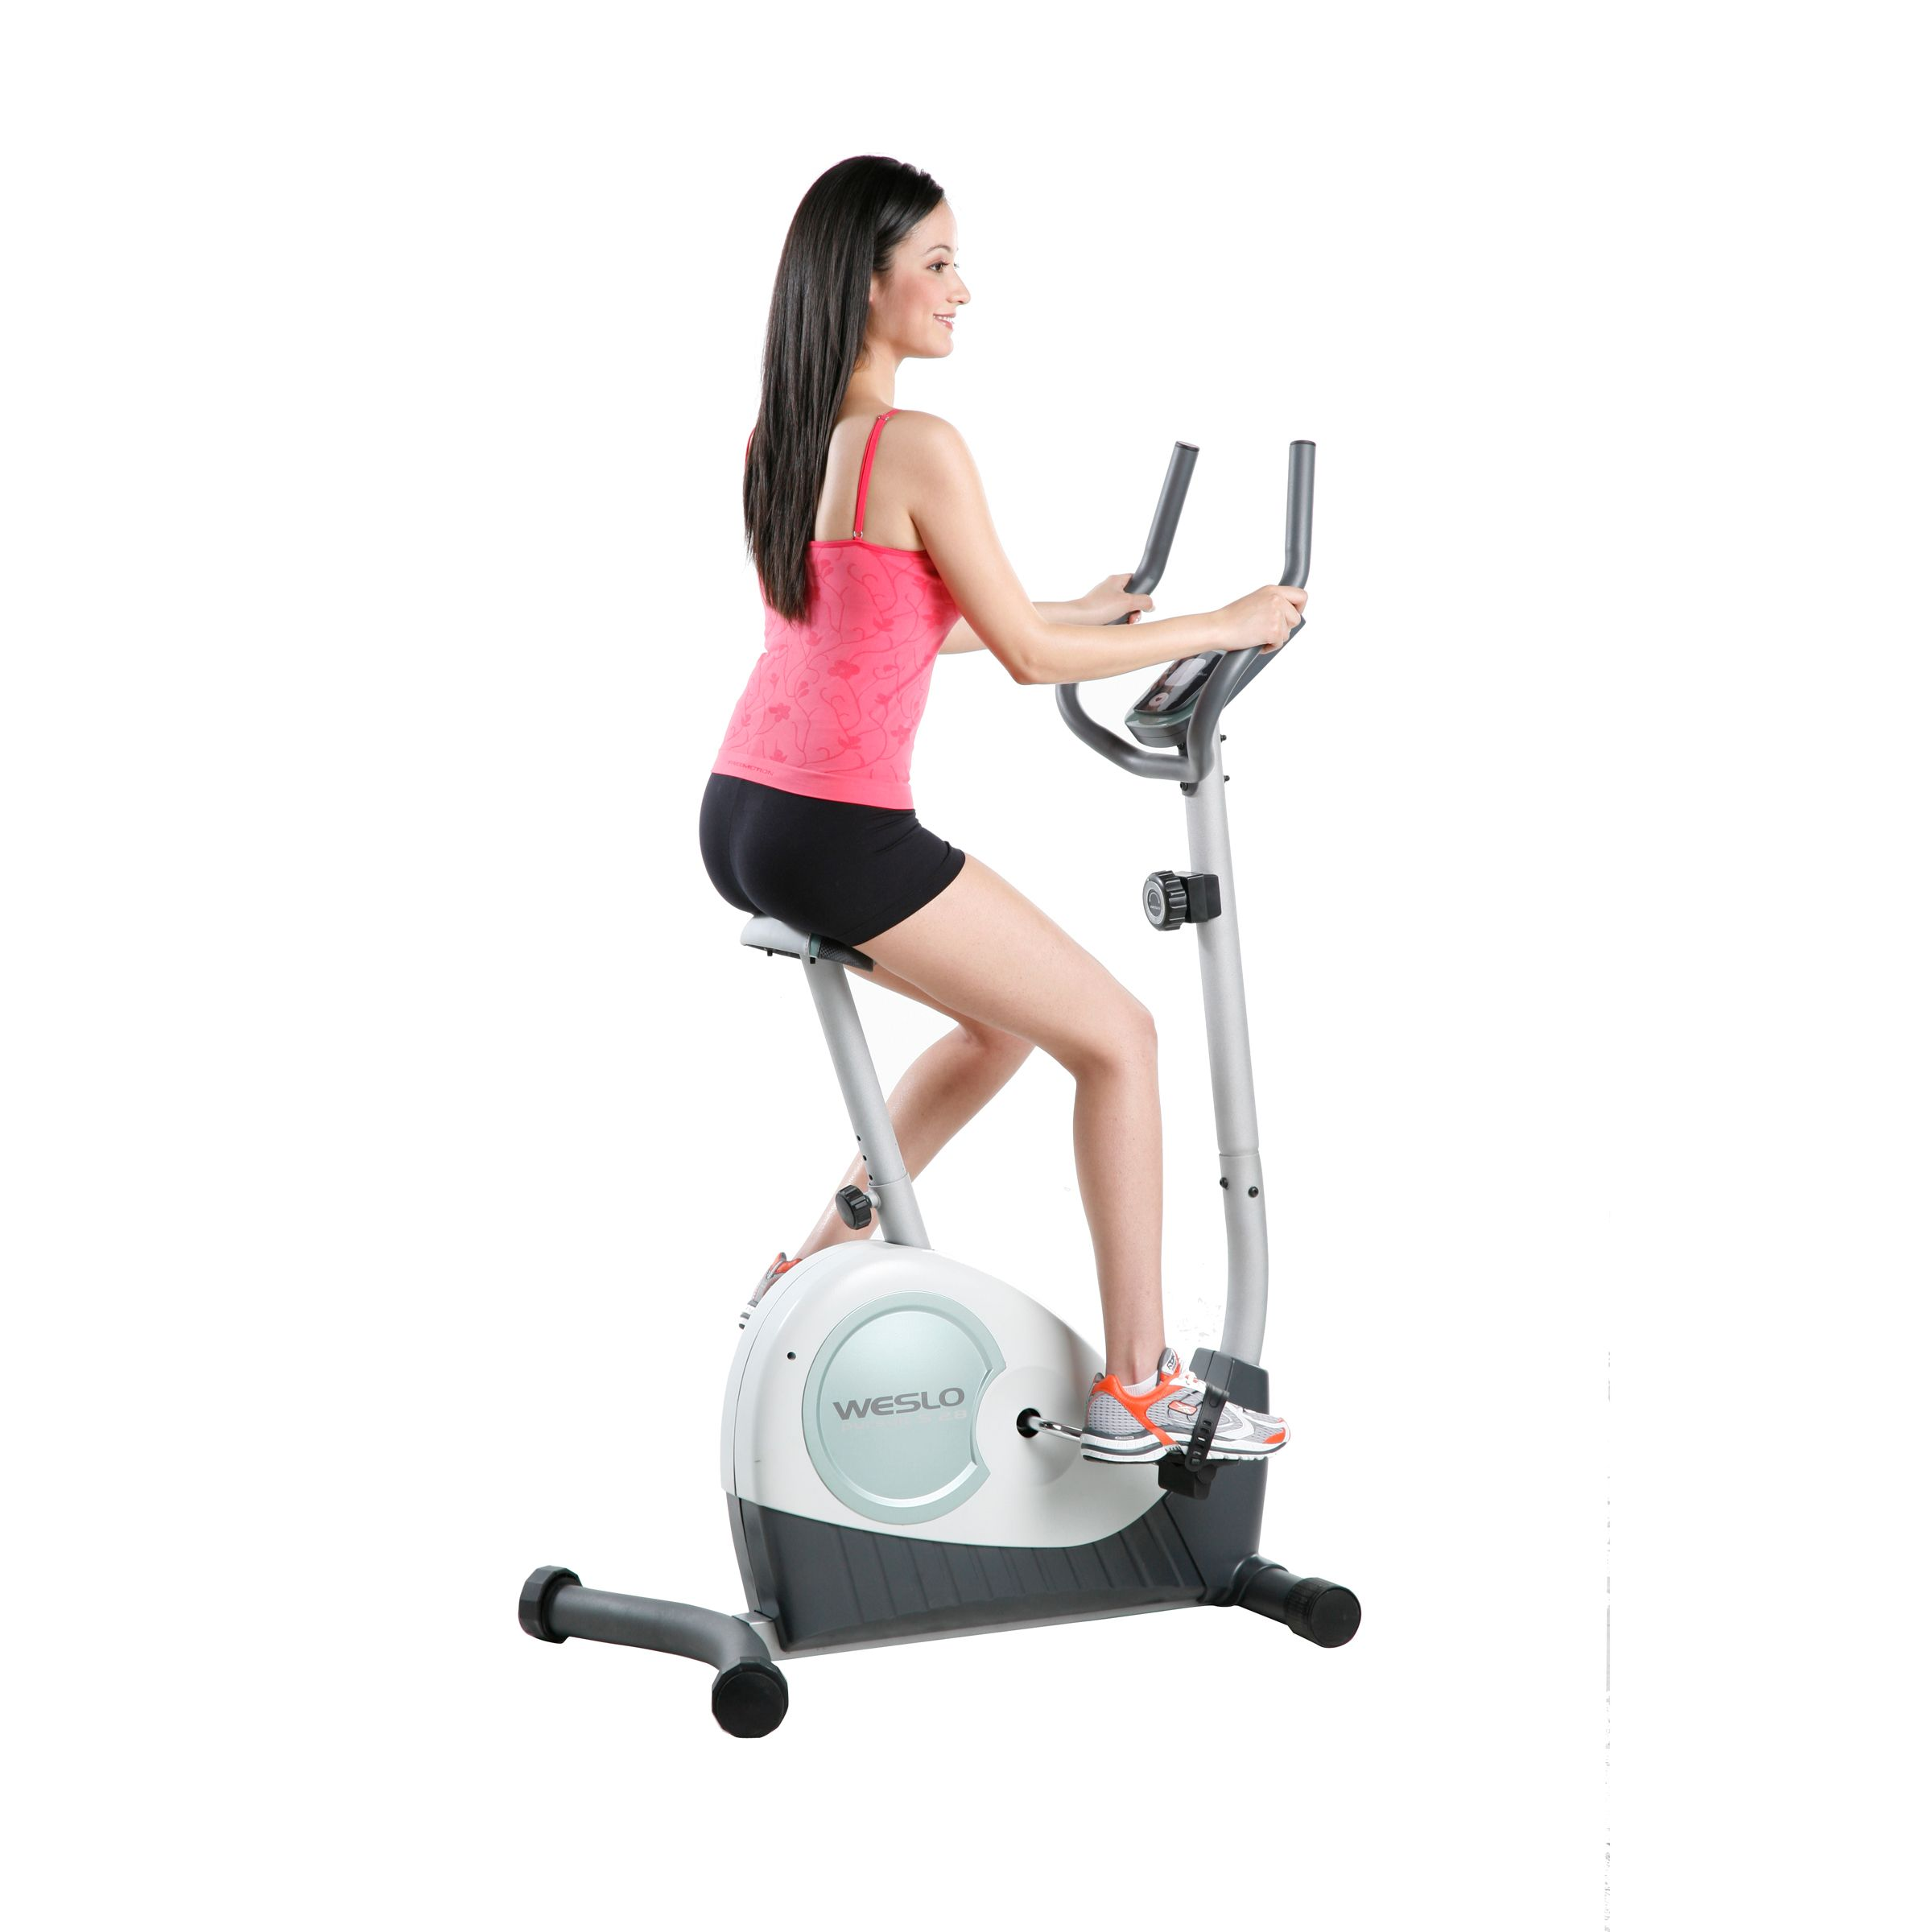 Weslo Pursuit S 2.8 Upright Exercise Cycle